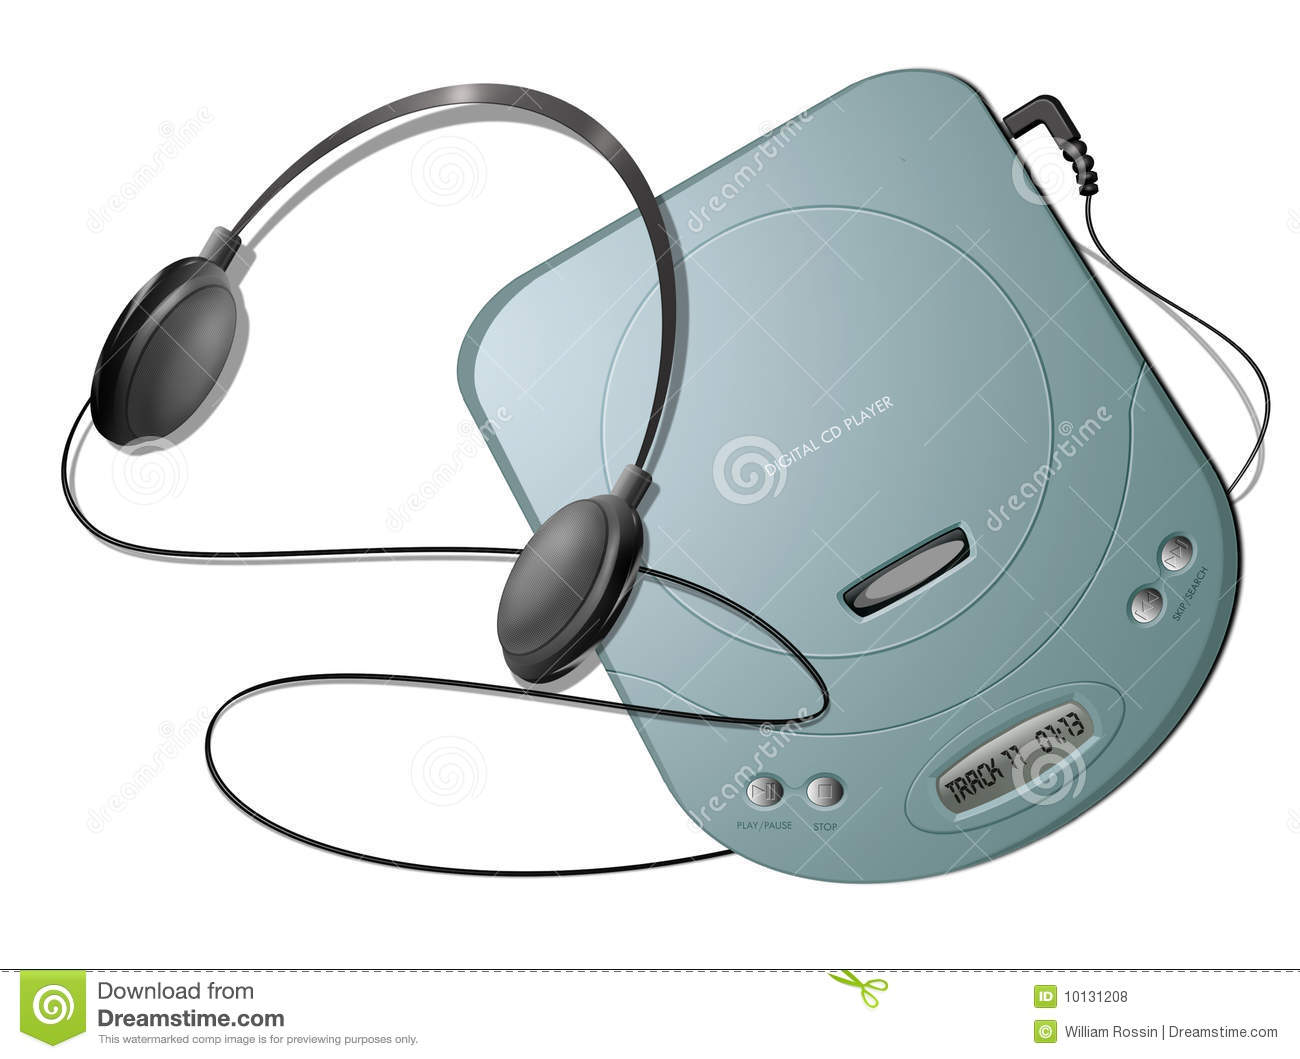 Wh H800 besides 11 27158204 likewise 282377337053 as well Royalty Free Stock Photos Portable Cd Player Headphones Green Image10131208 moreover 5  munications Trends Affecting Business And Education. on 10 portable cd players